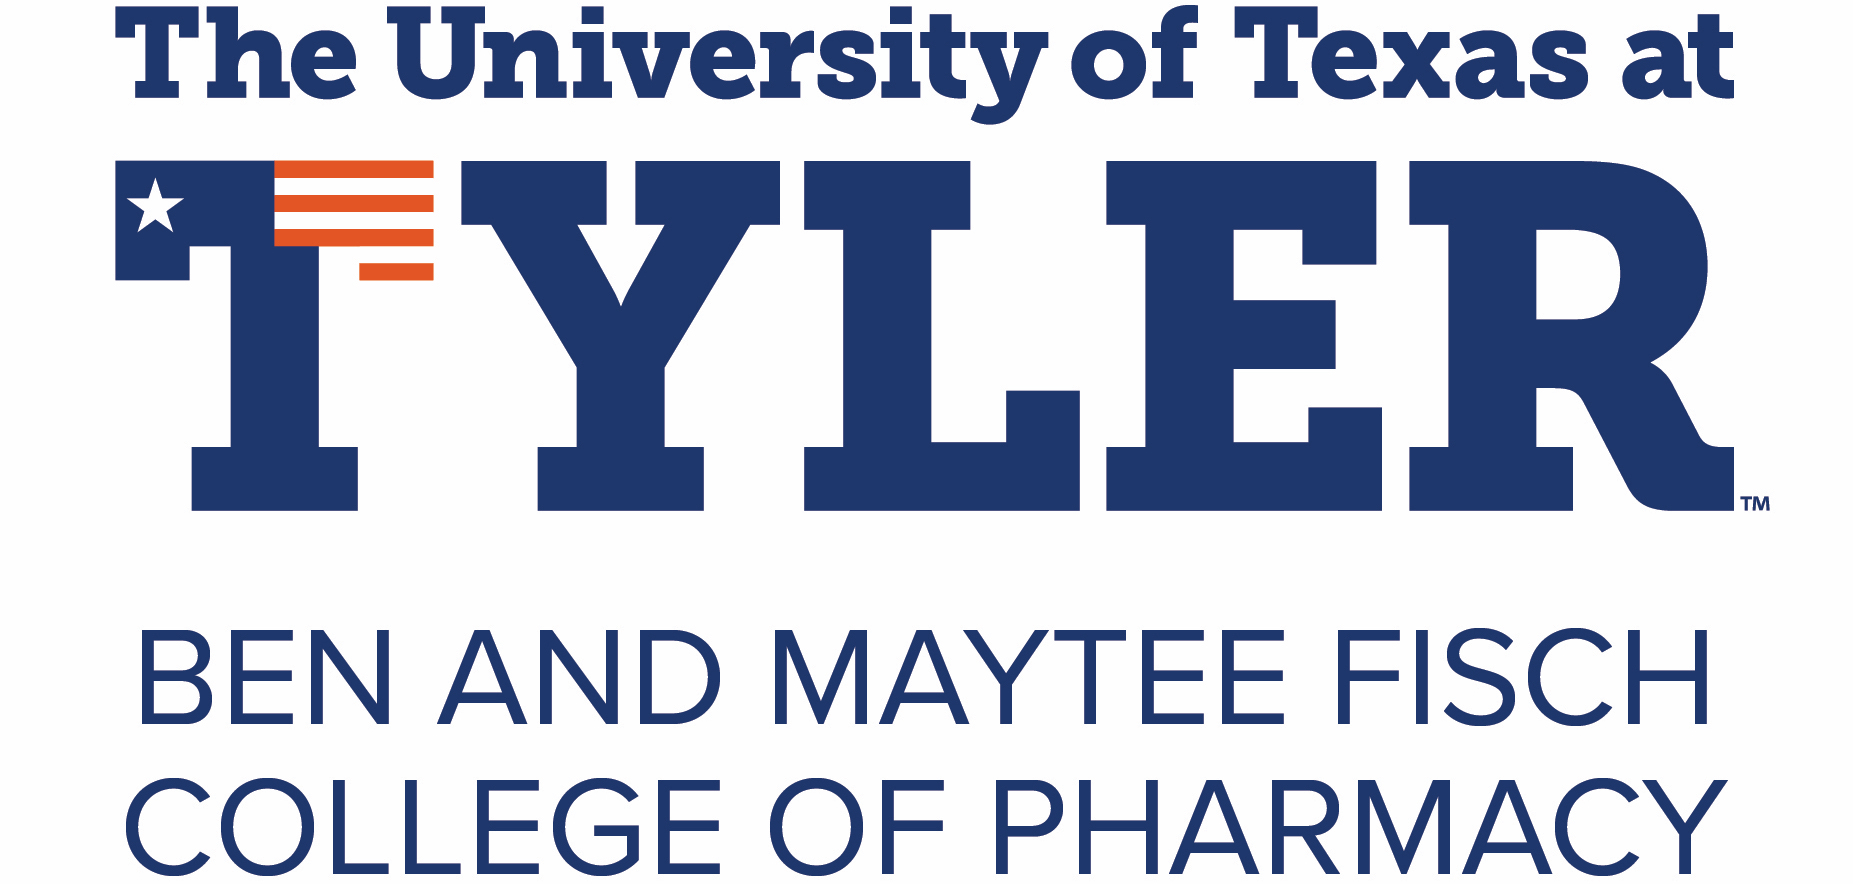 University of Texas at Tyler text logo